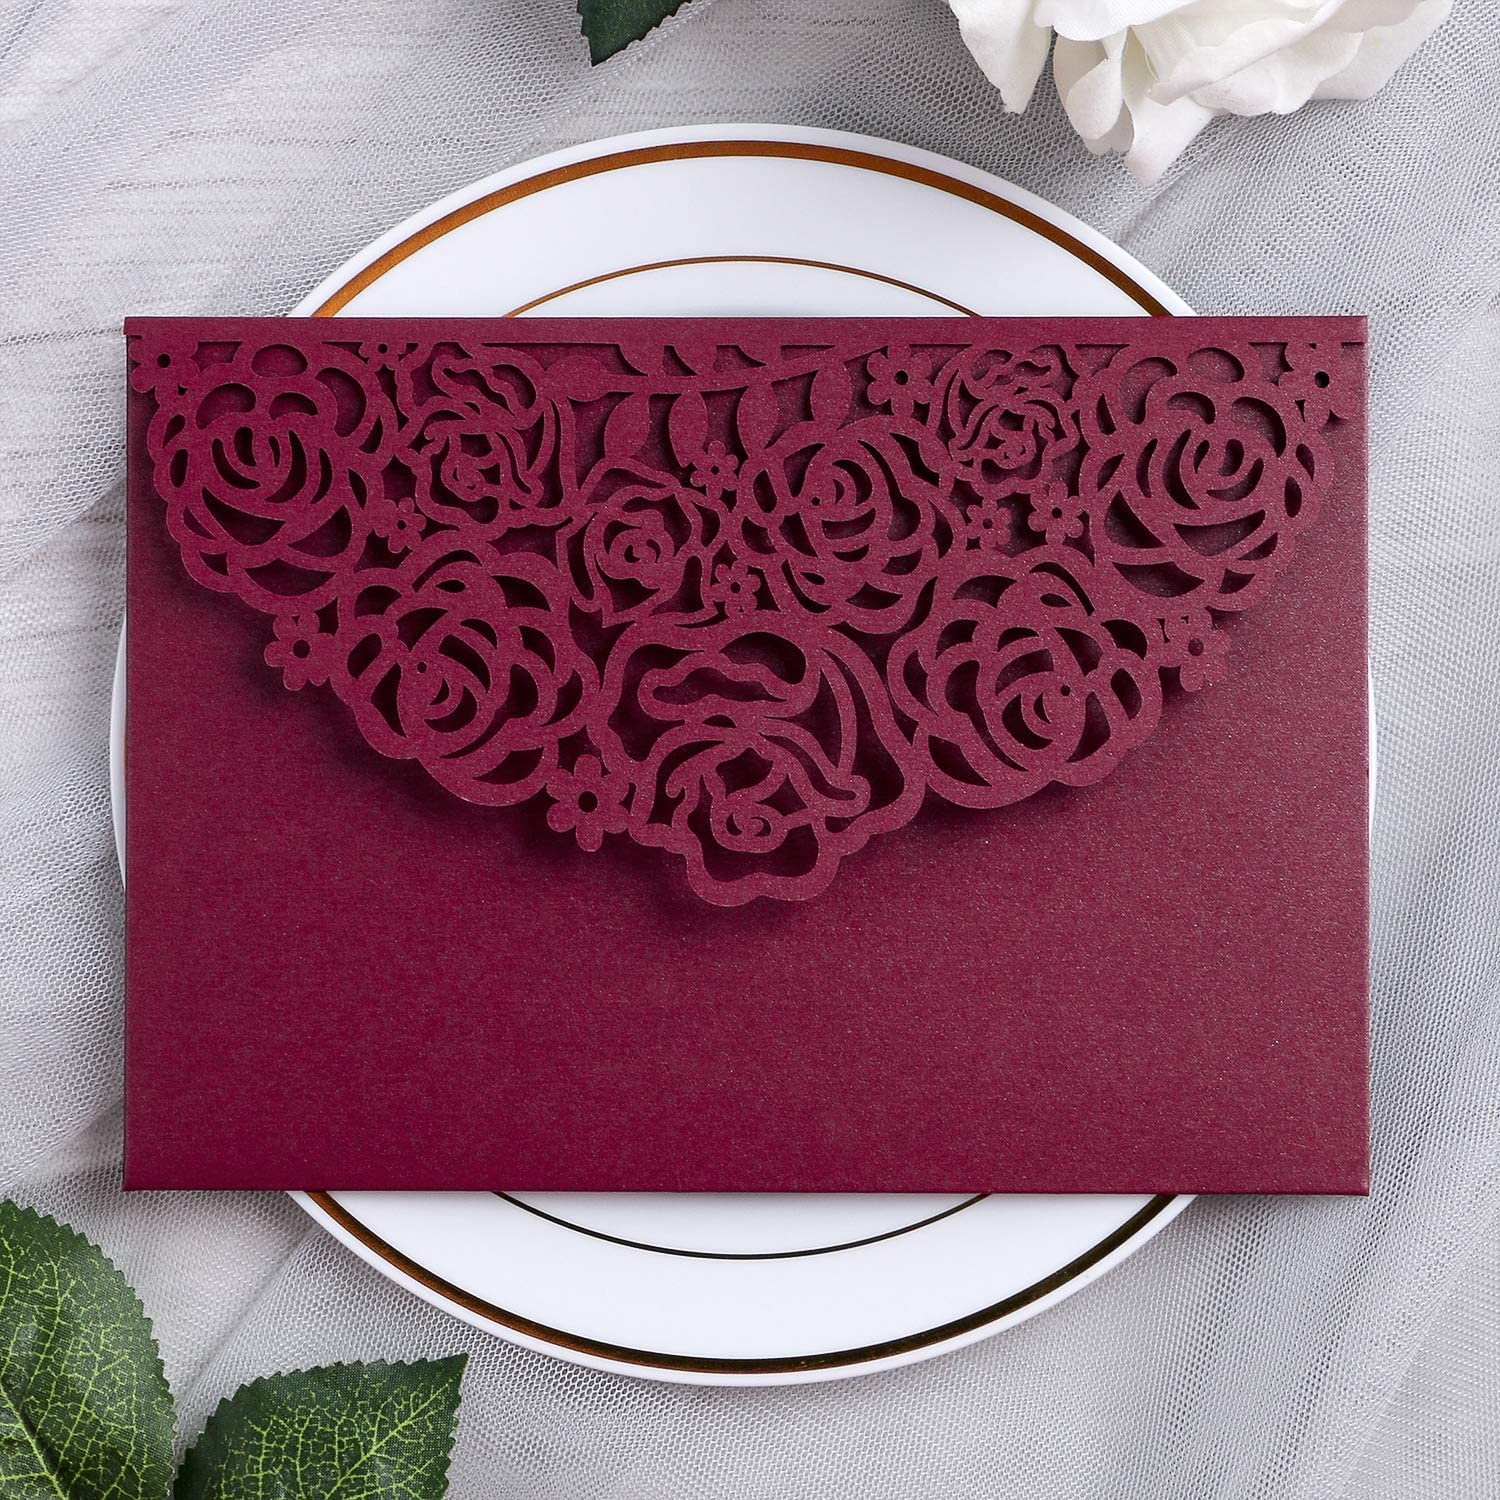 Amazon.com: YIMIL 20 Pcs 5.12 x 7.21 inch Tri-fold Laser Cut Wedding  Invitation Pocket for Wedding Quinceanera Bridal Shower Baby Shower Party  Invite (Burgundy): Arts, Crafts & Sewing